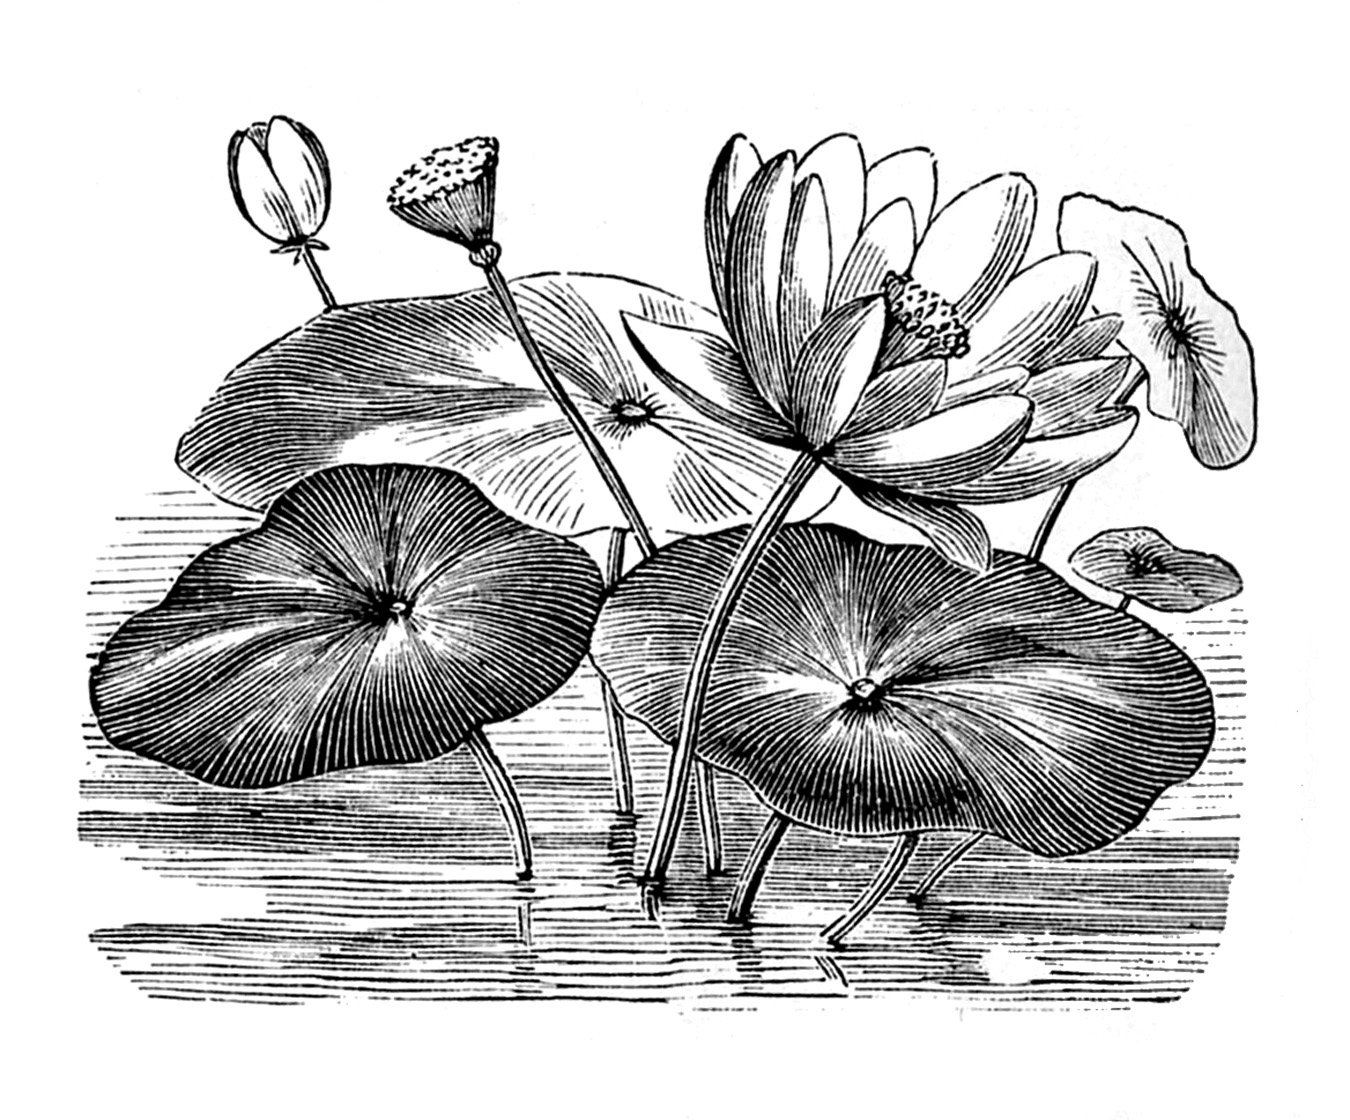 Vintage Clip Art - Water Lily - Lotus Flowers - The Graphics Fairy